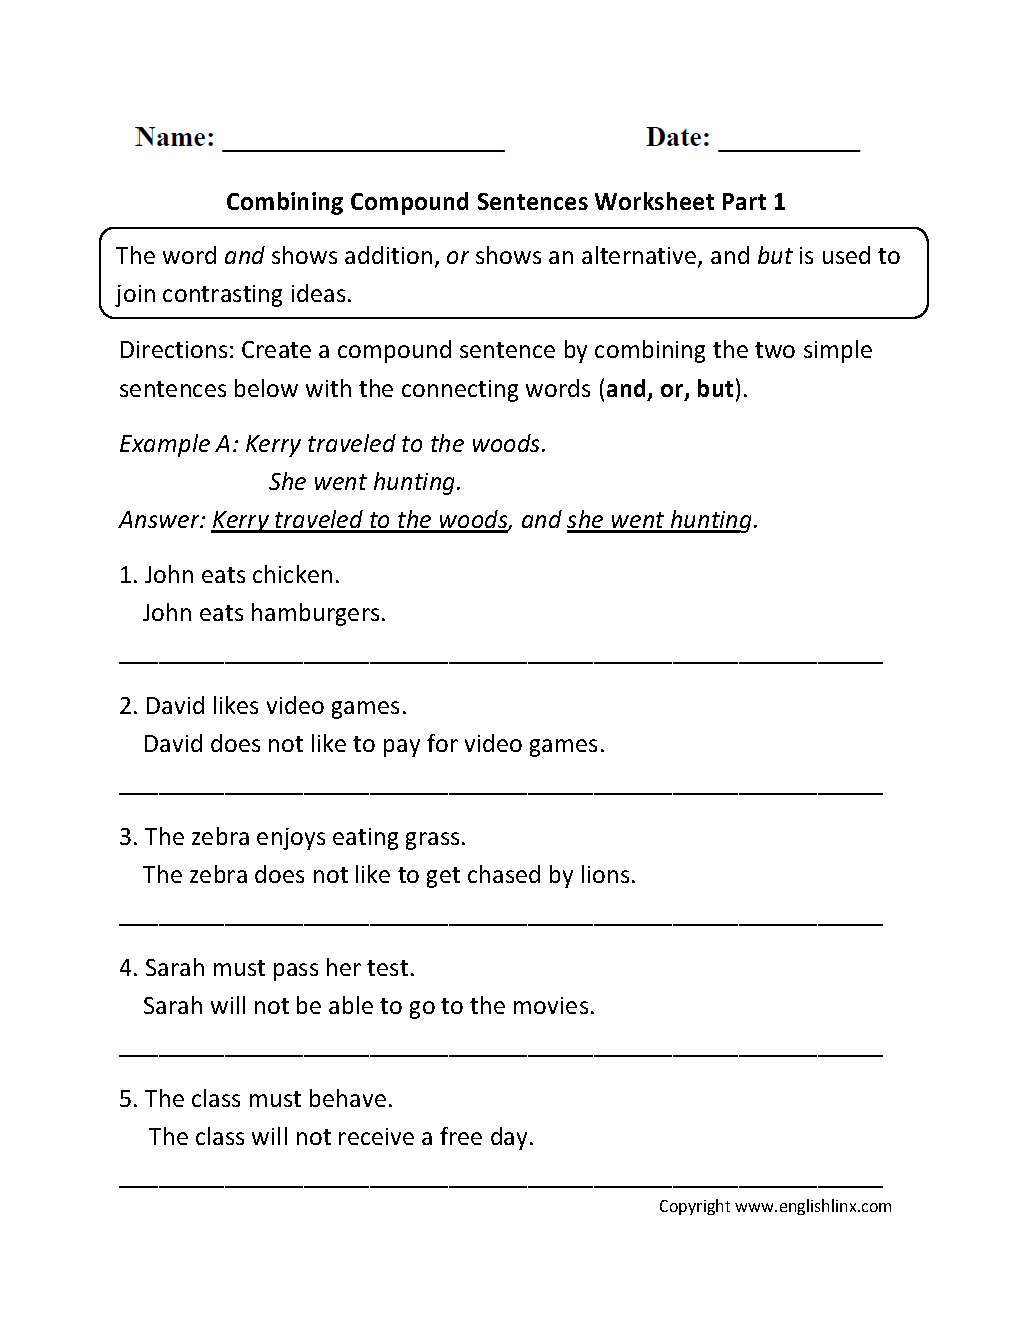 Workbooks worksheets on conjunctions for grade 8 : Sentences Worksheets | Compound Sentences Worksheets